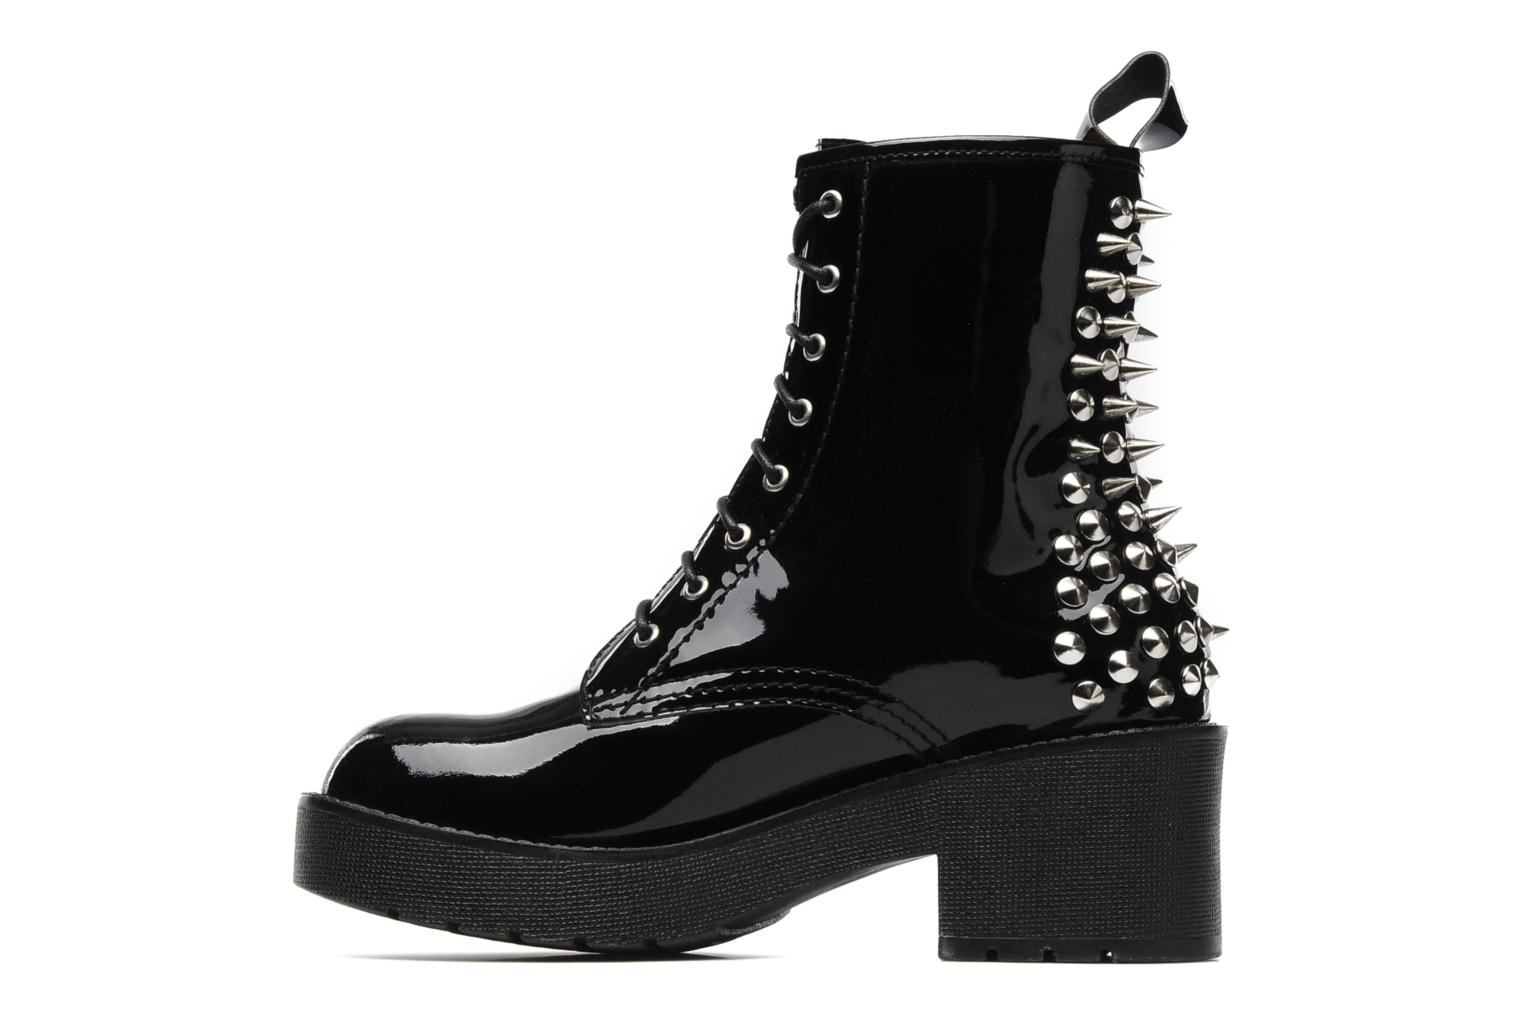 Jeffrey Campbell 8th Street Ankle Boots In Black At